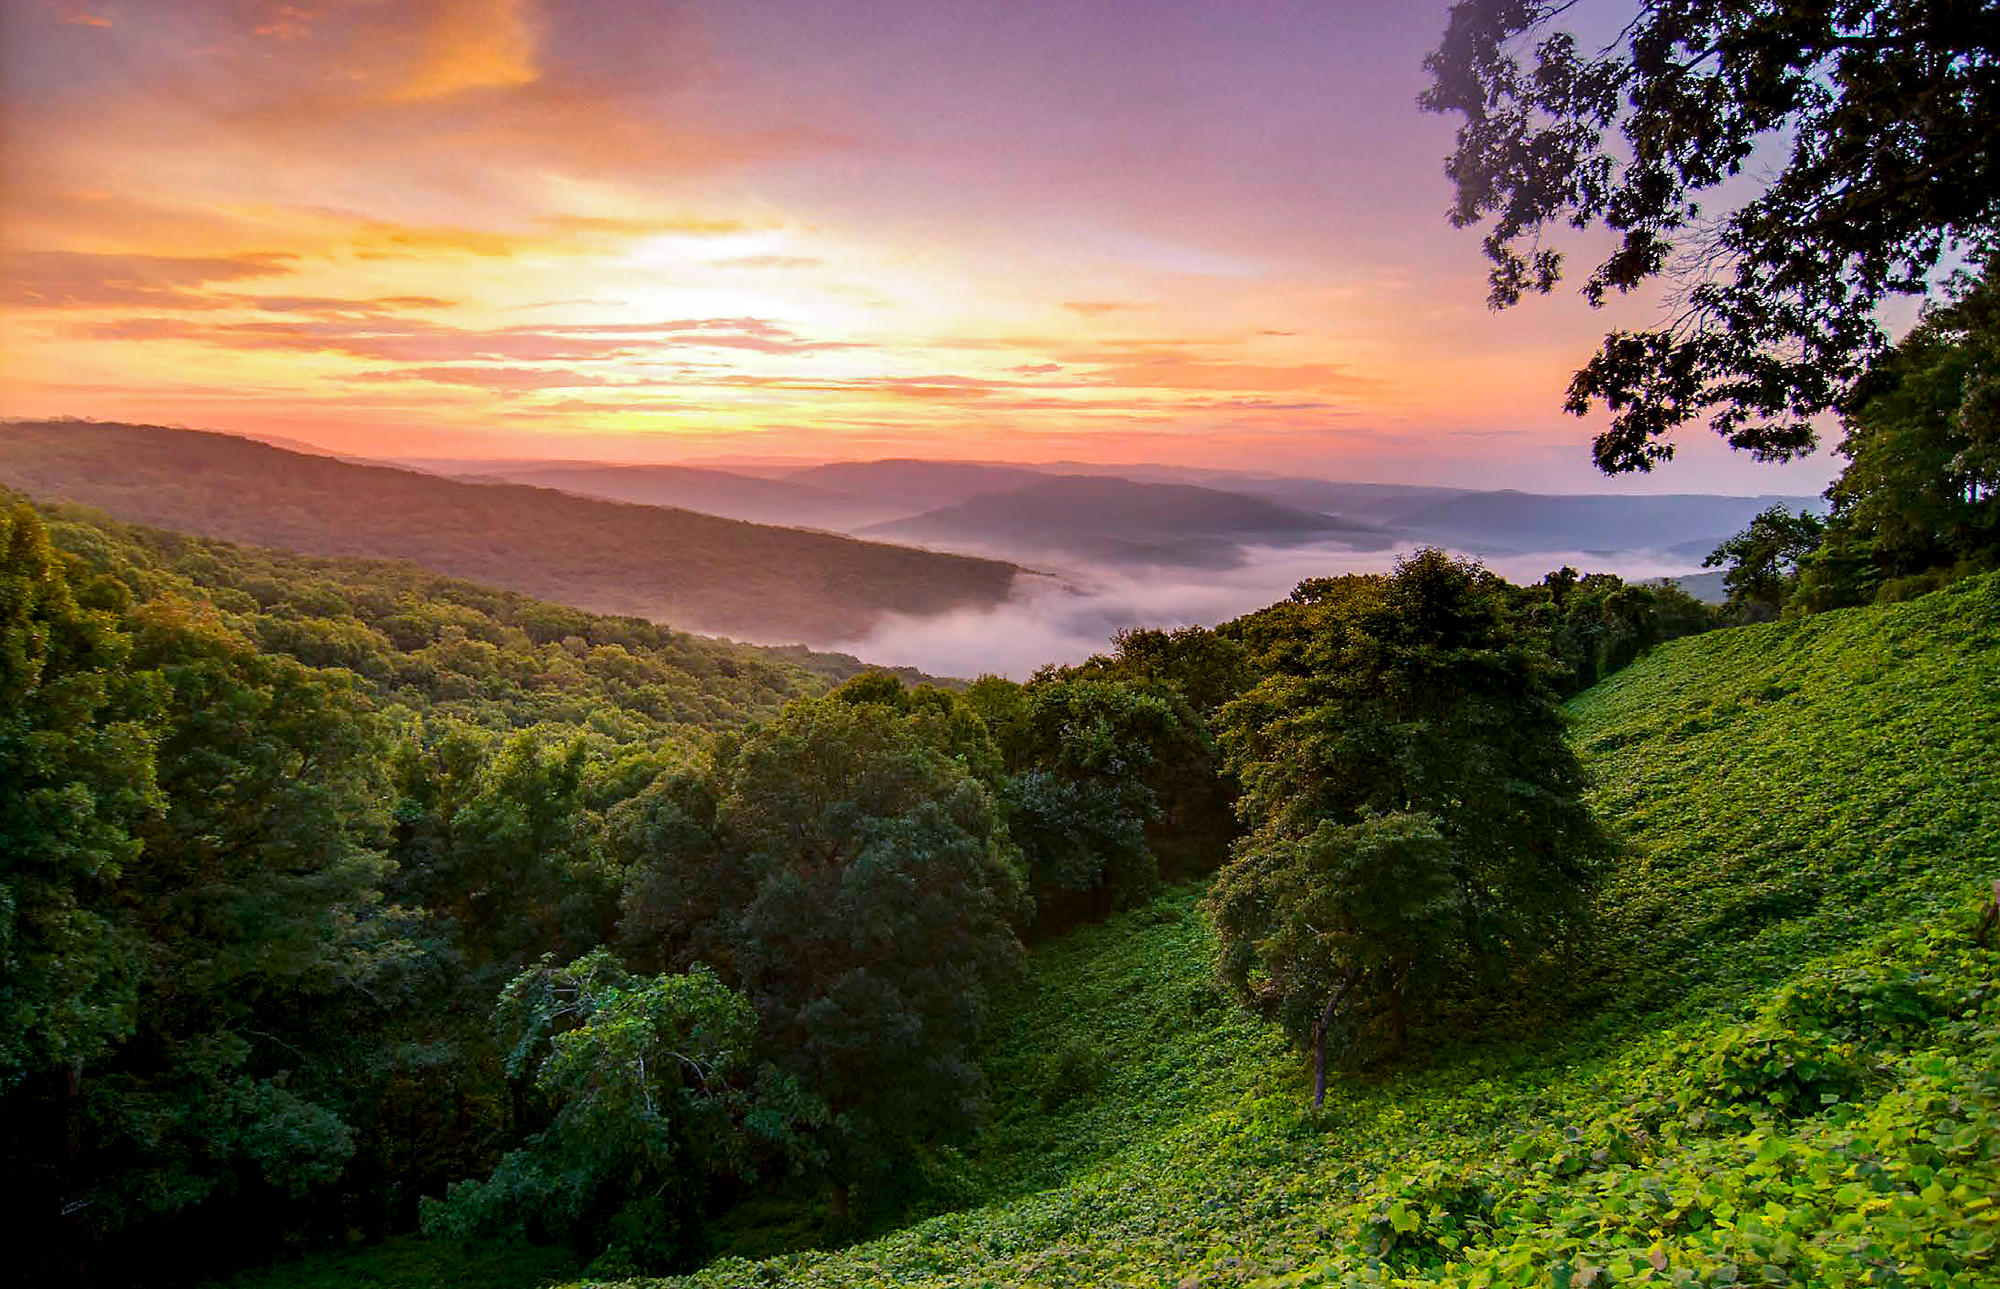 Missouri Ozark Mountains Hillside Sunrise